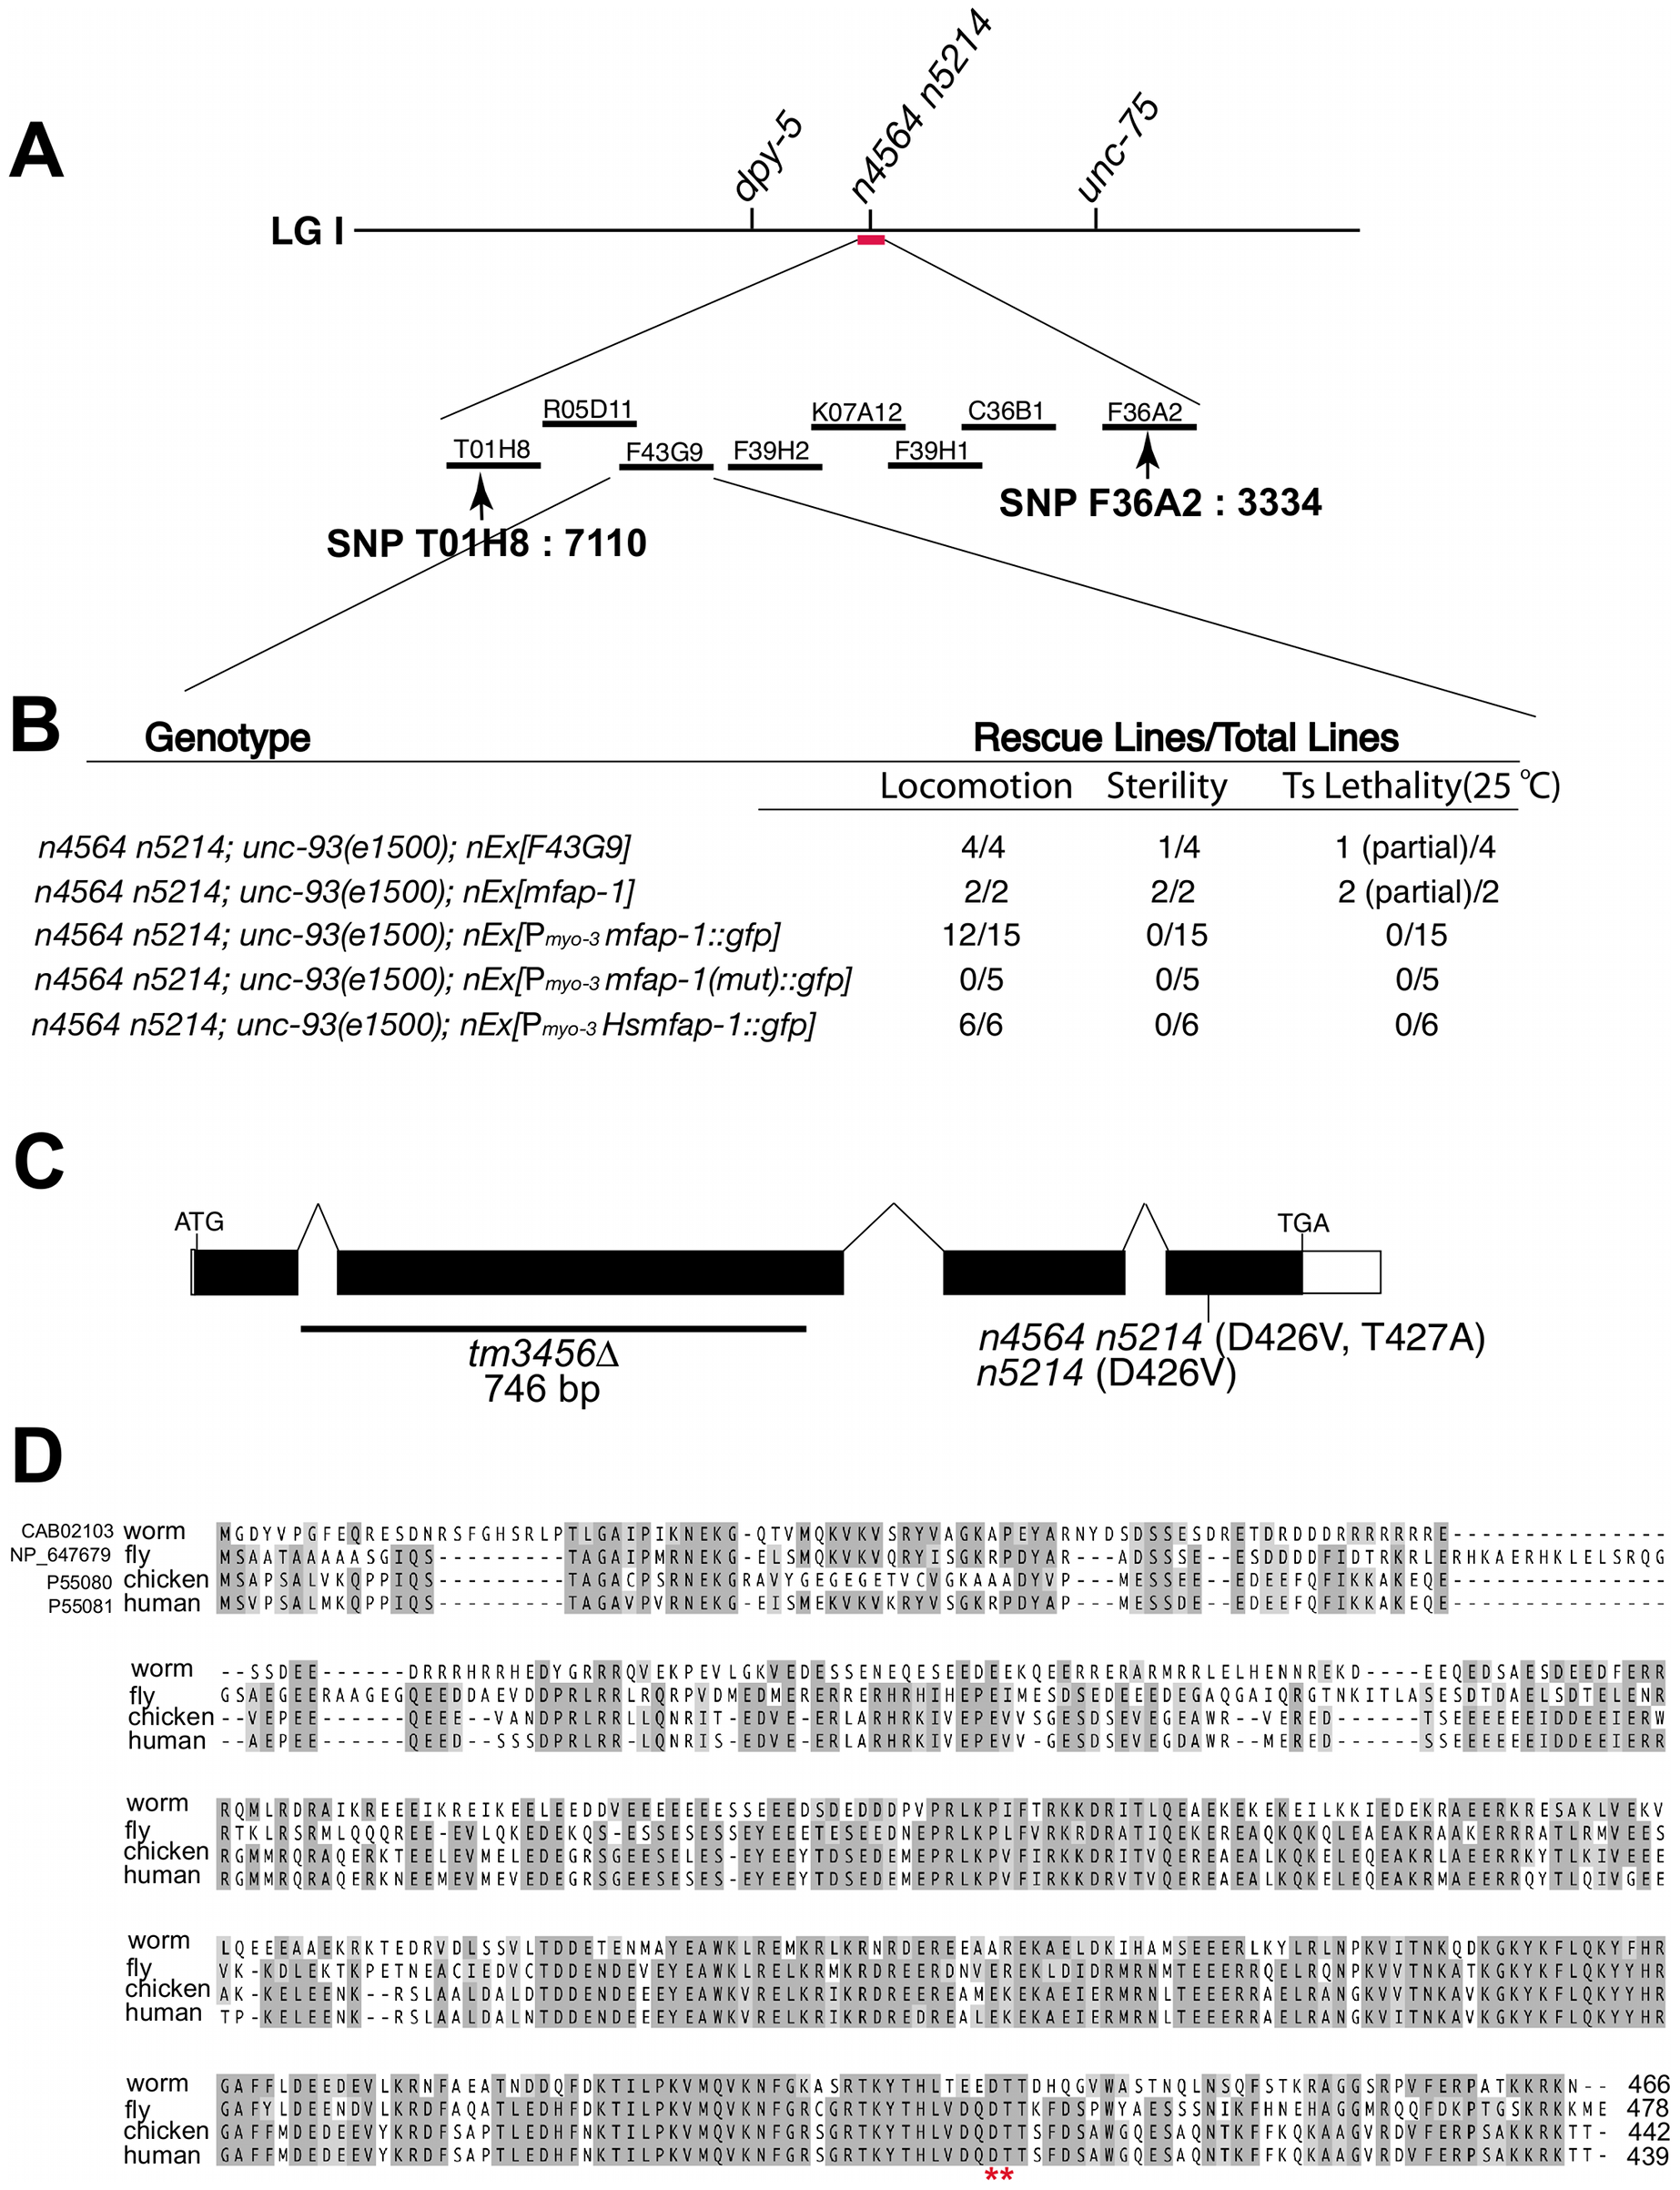 Genetic mapping, cloning, and identification of <i>mfap-1</i>.